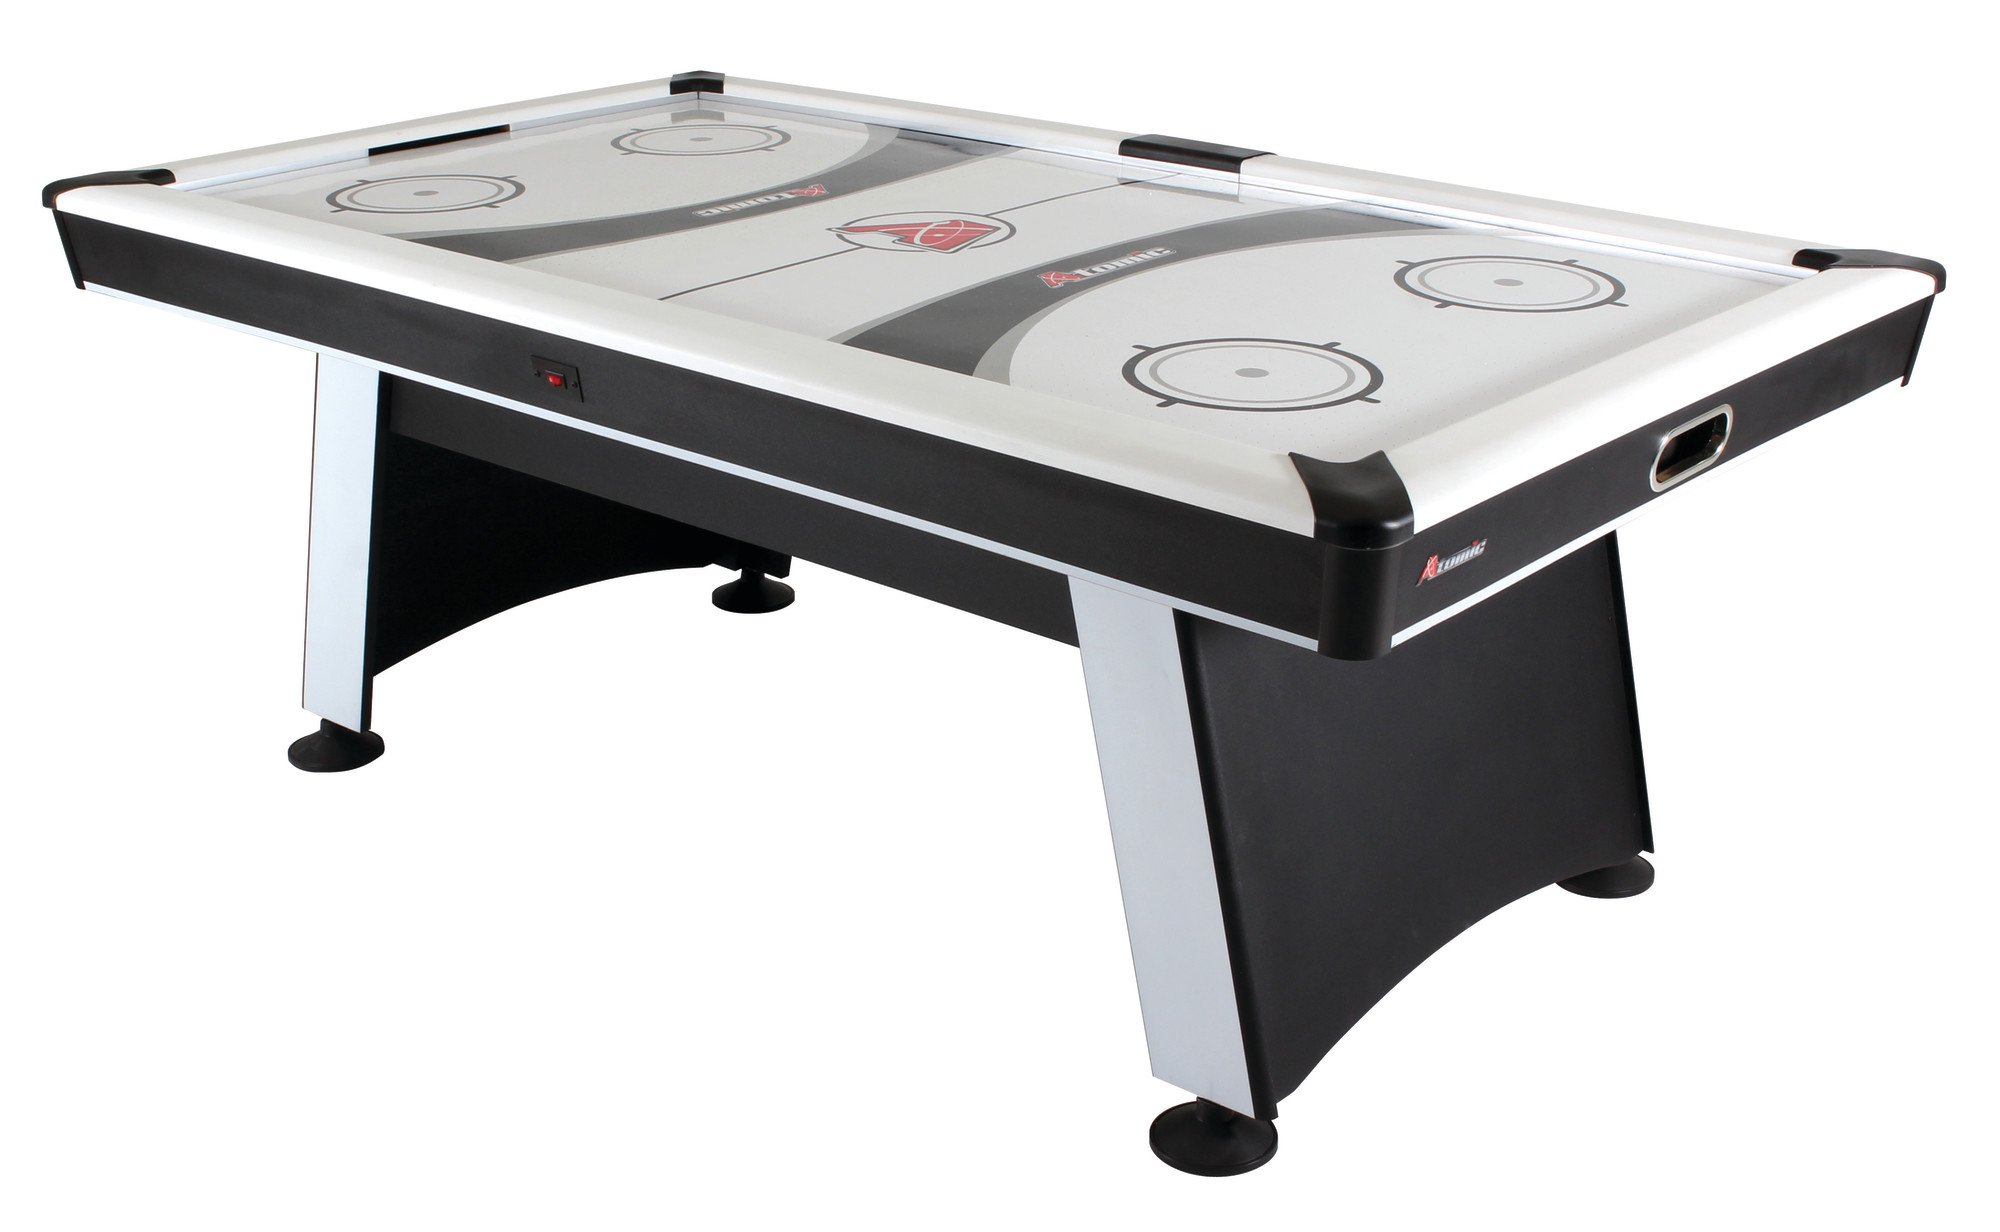 Superbe Atomic Blazer 7u0027 Air Hockey Table